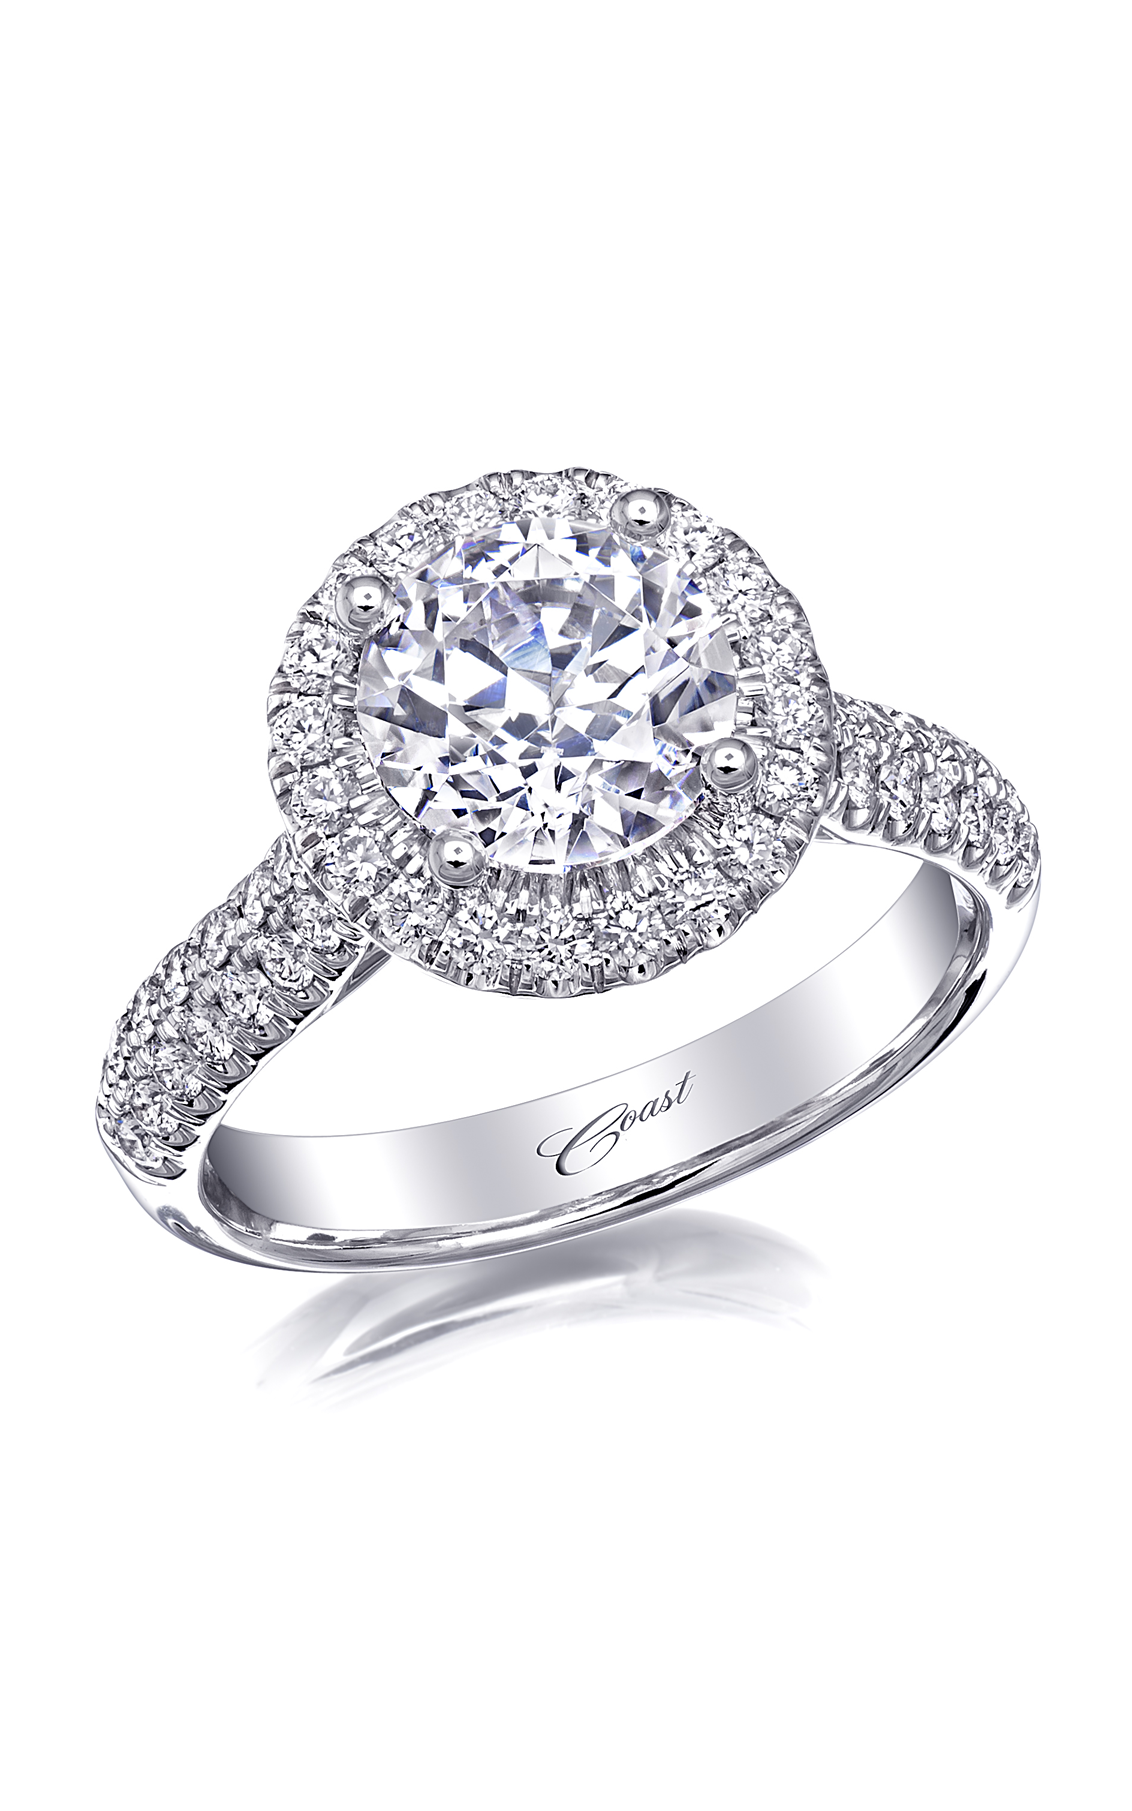 Coast Diamond Charisma LC10113 product image